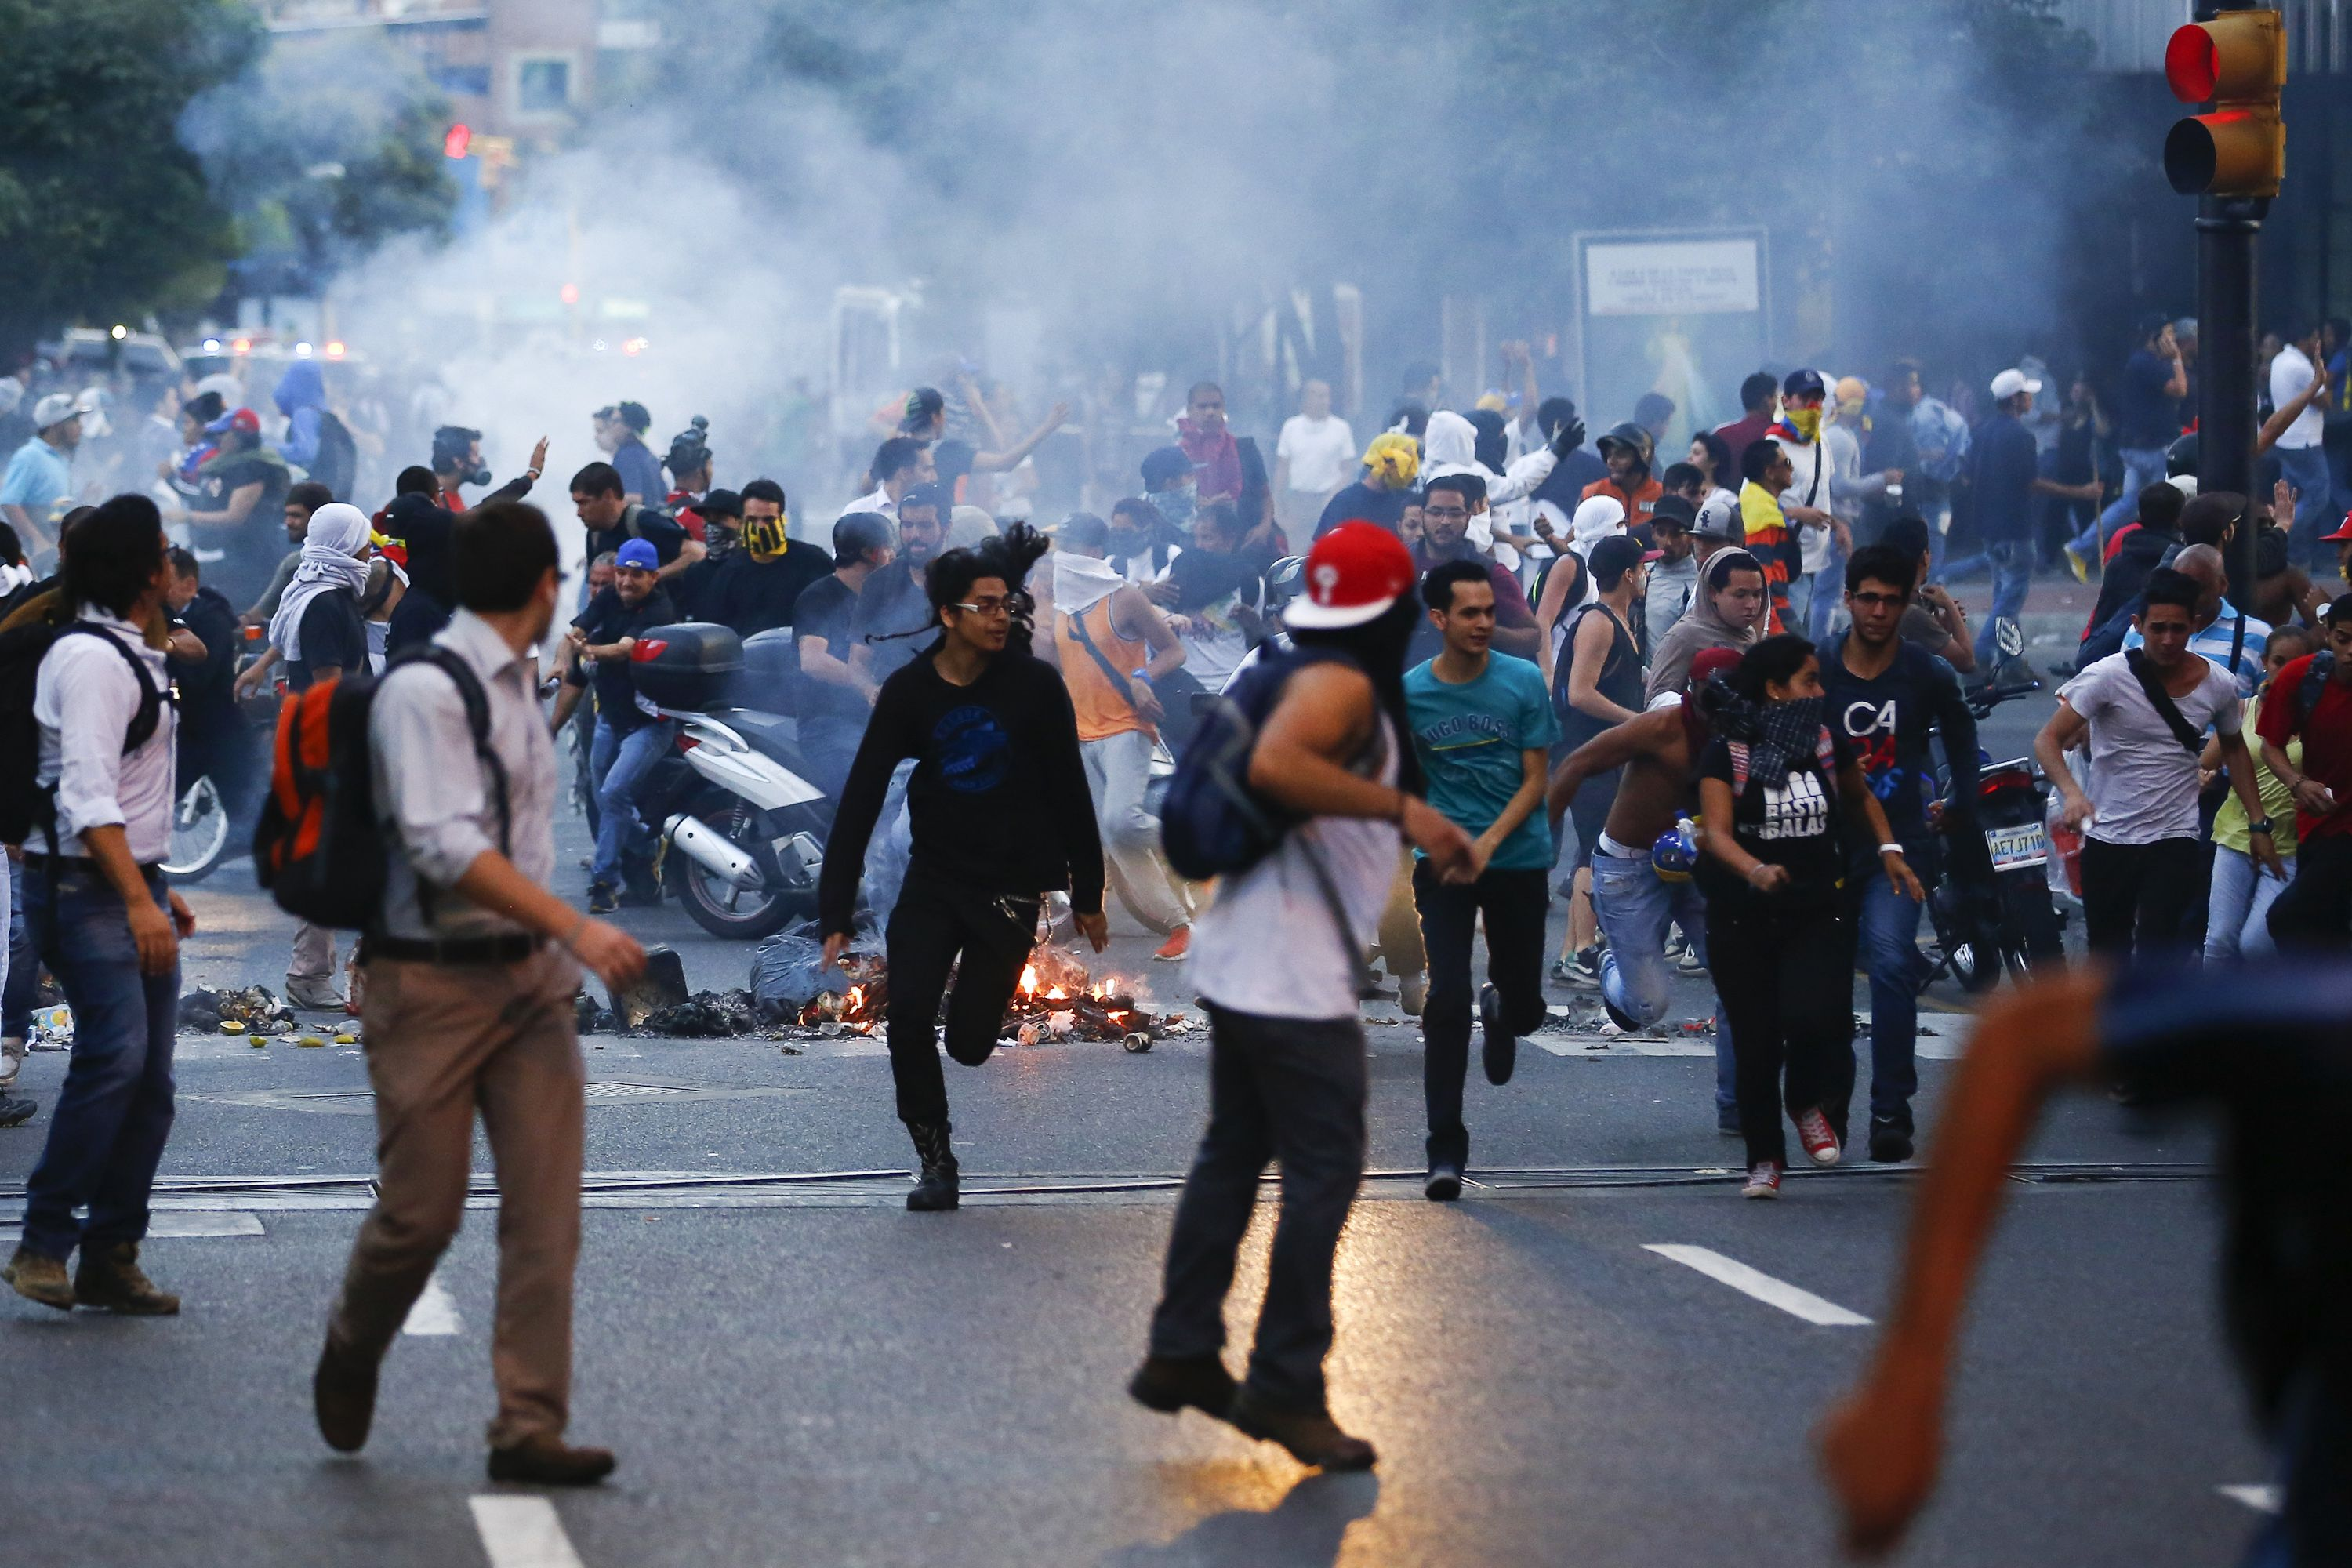 Demonstrators run away from tear gas during a protest in Caracas